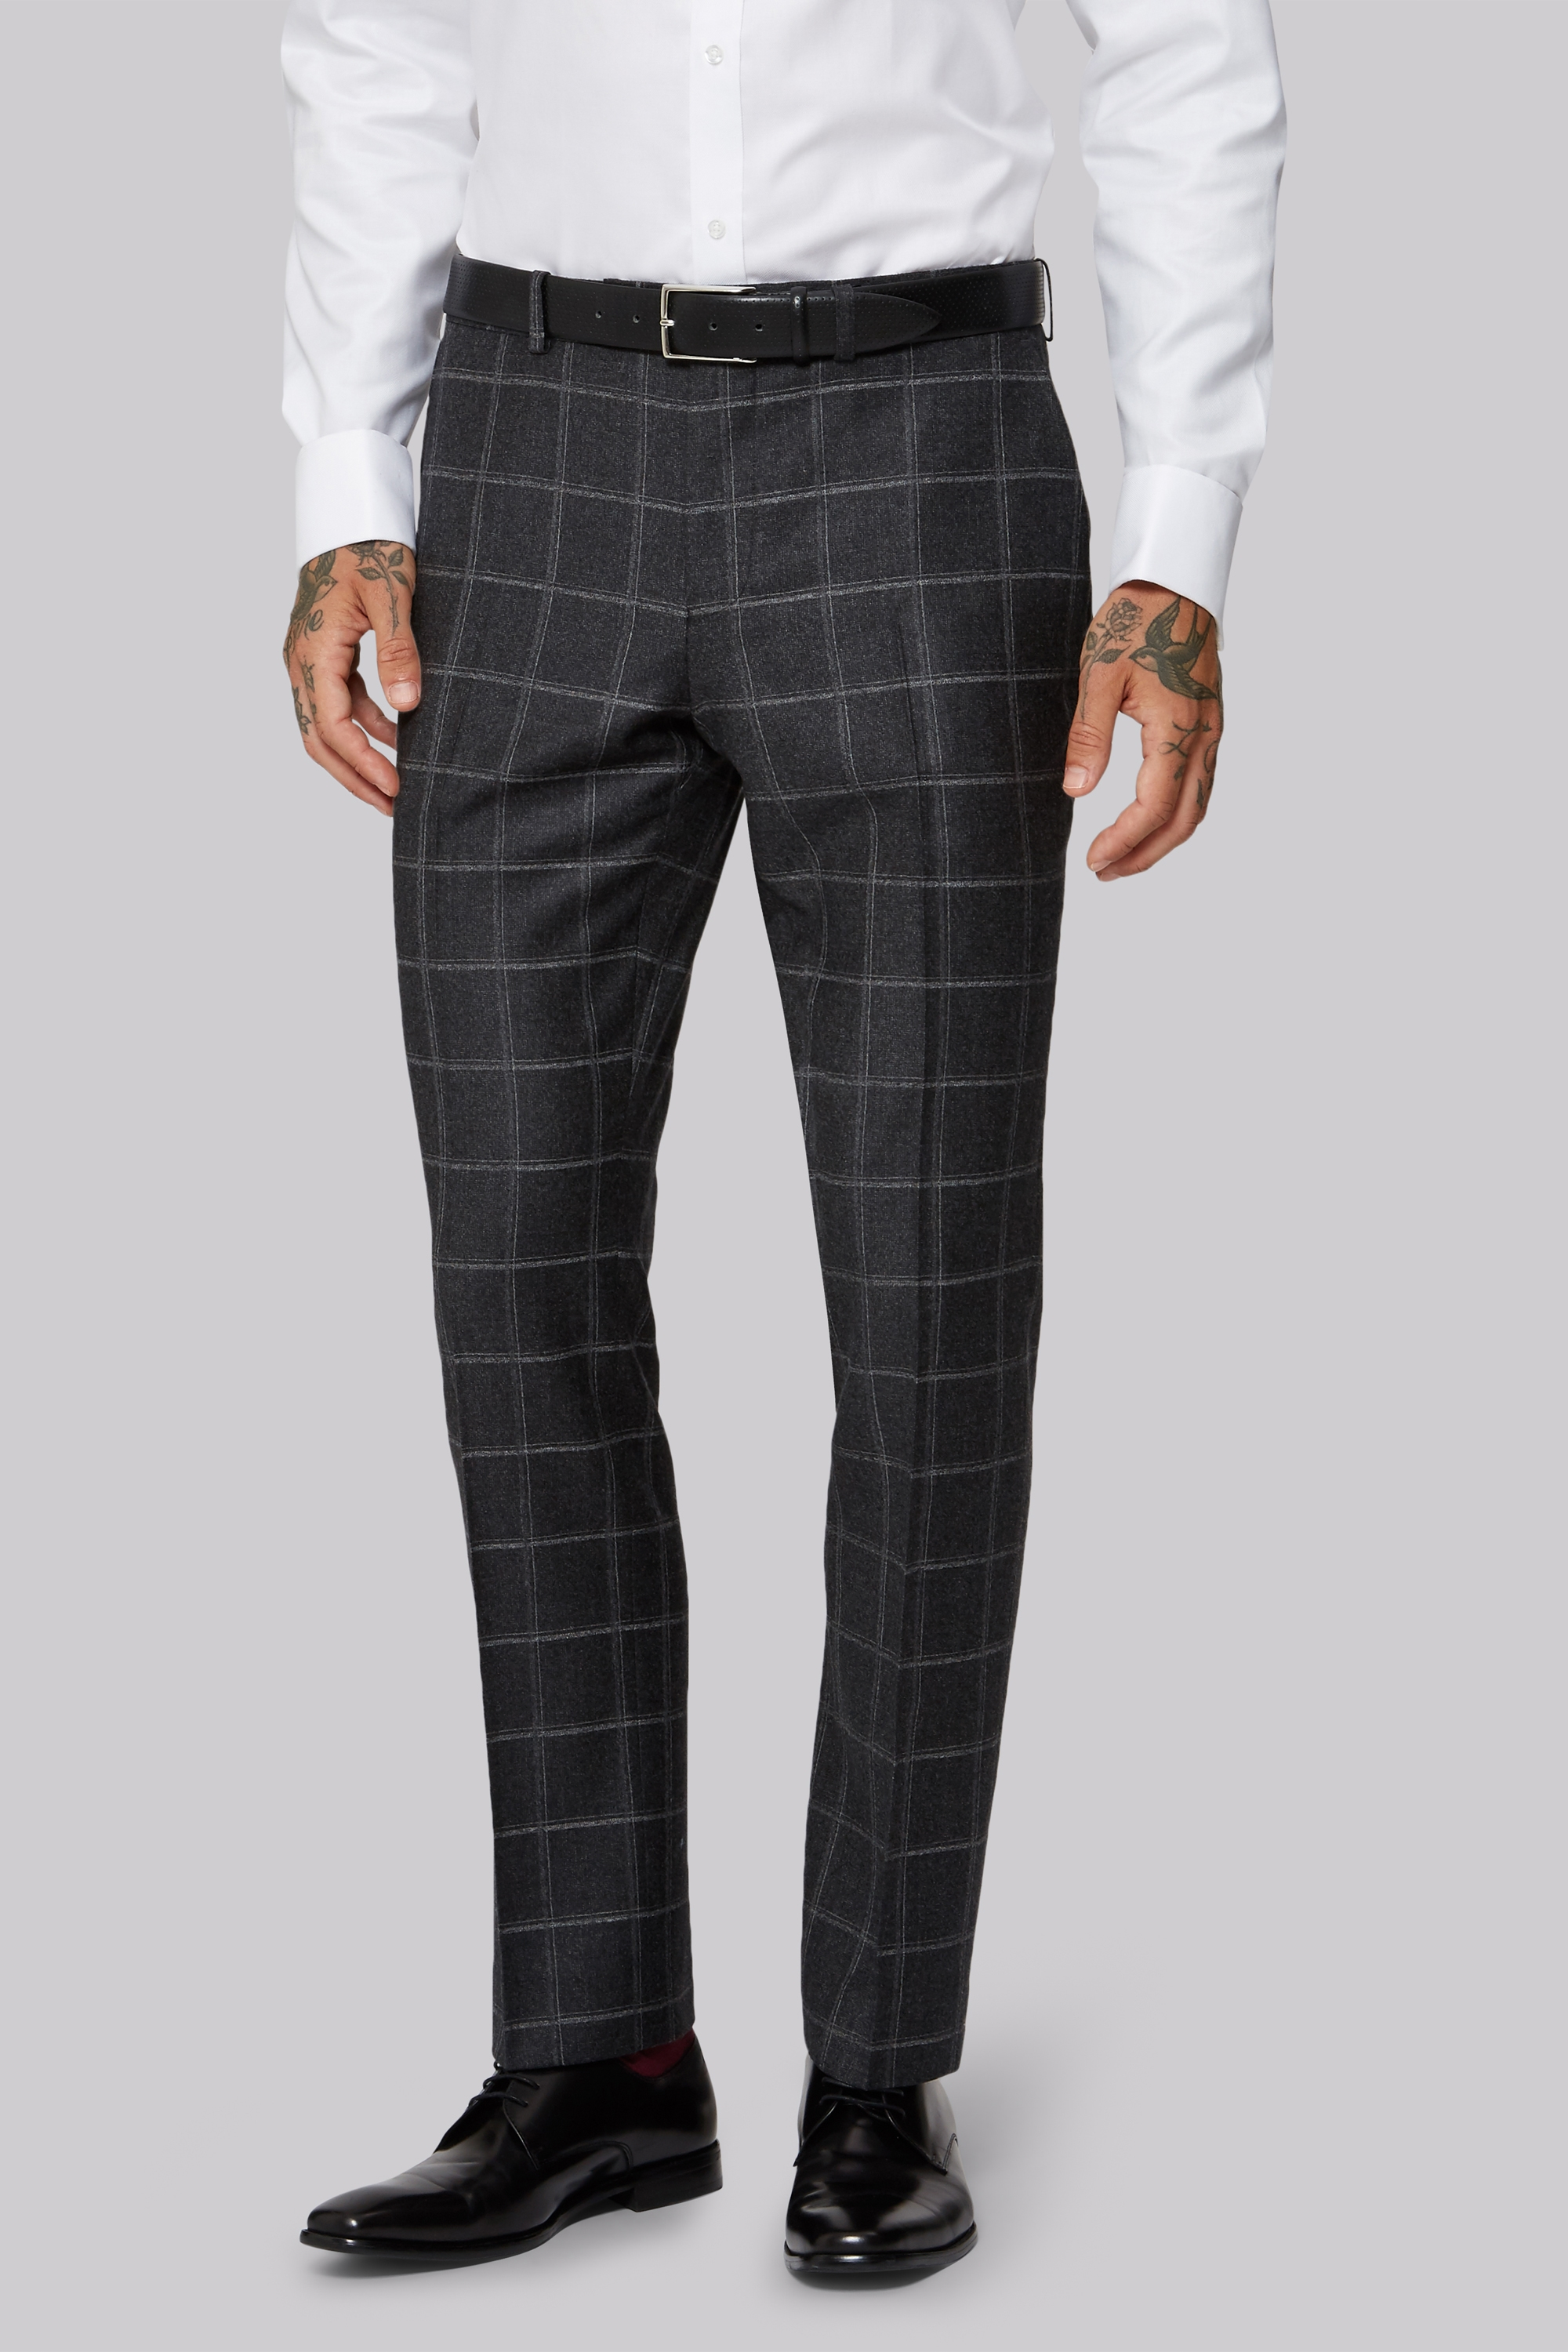 1851 Tailored Fit Italian Grey Windowpane Trouser